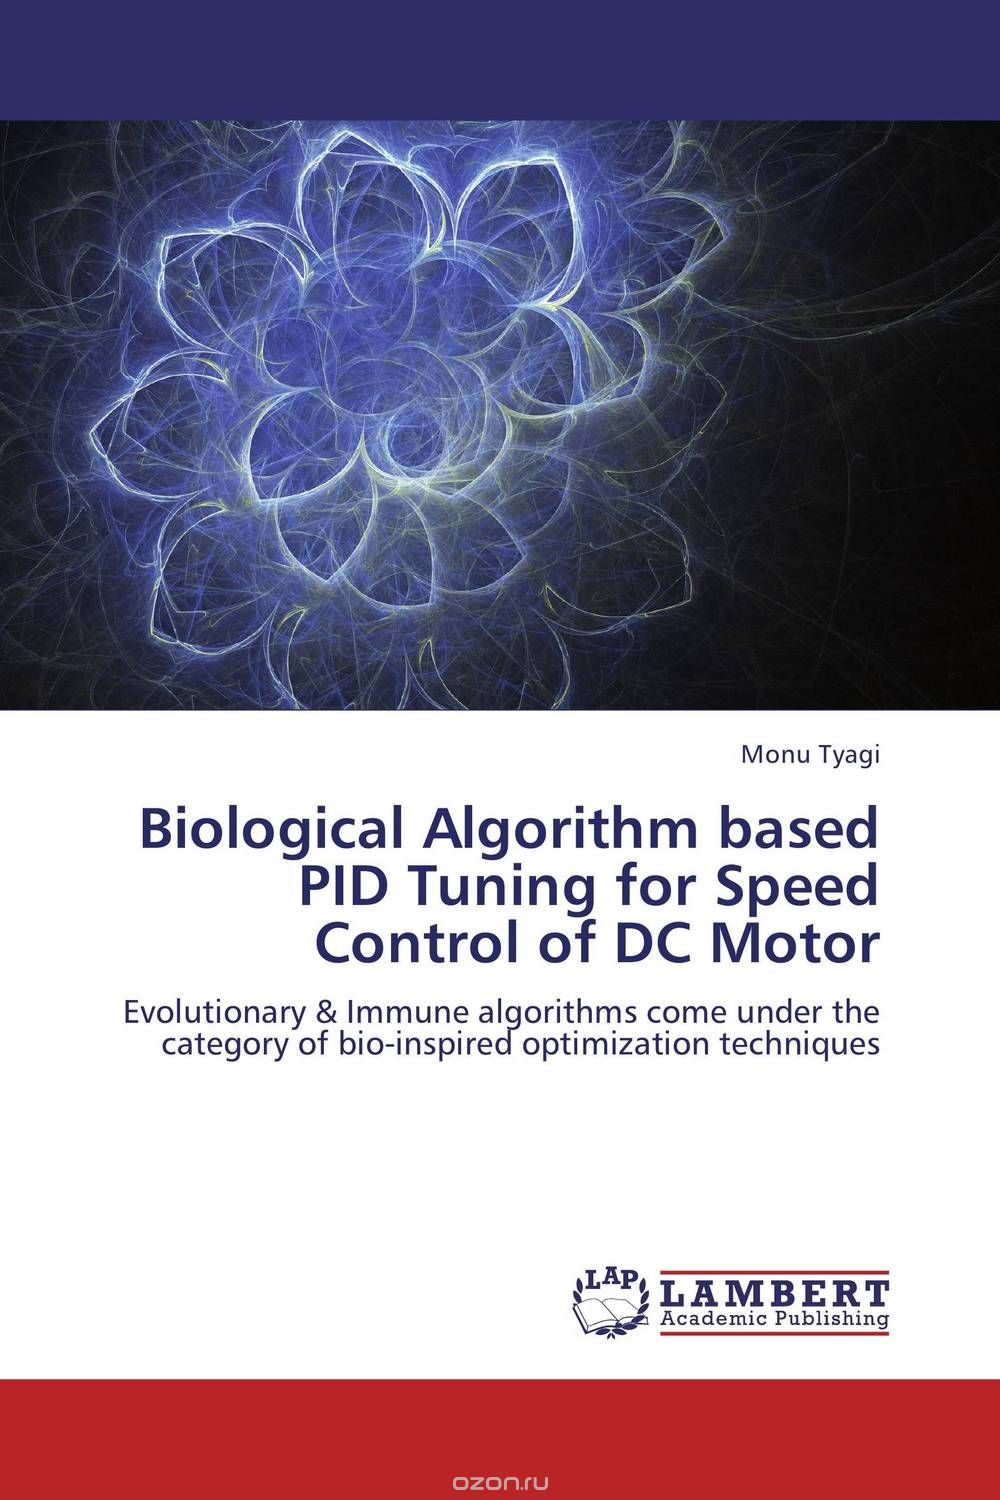 Biological Algorithm based PID Tuning for Speed Control of DC Motor